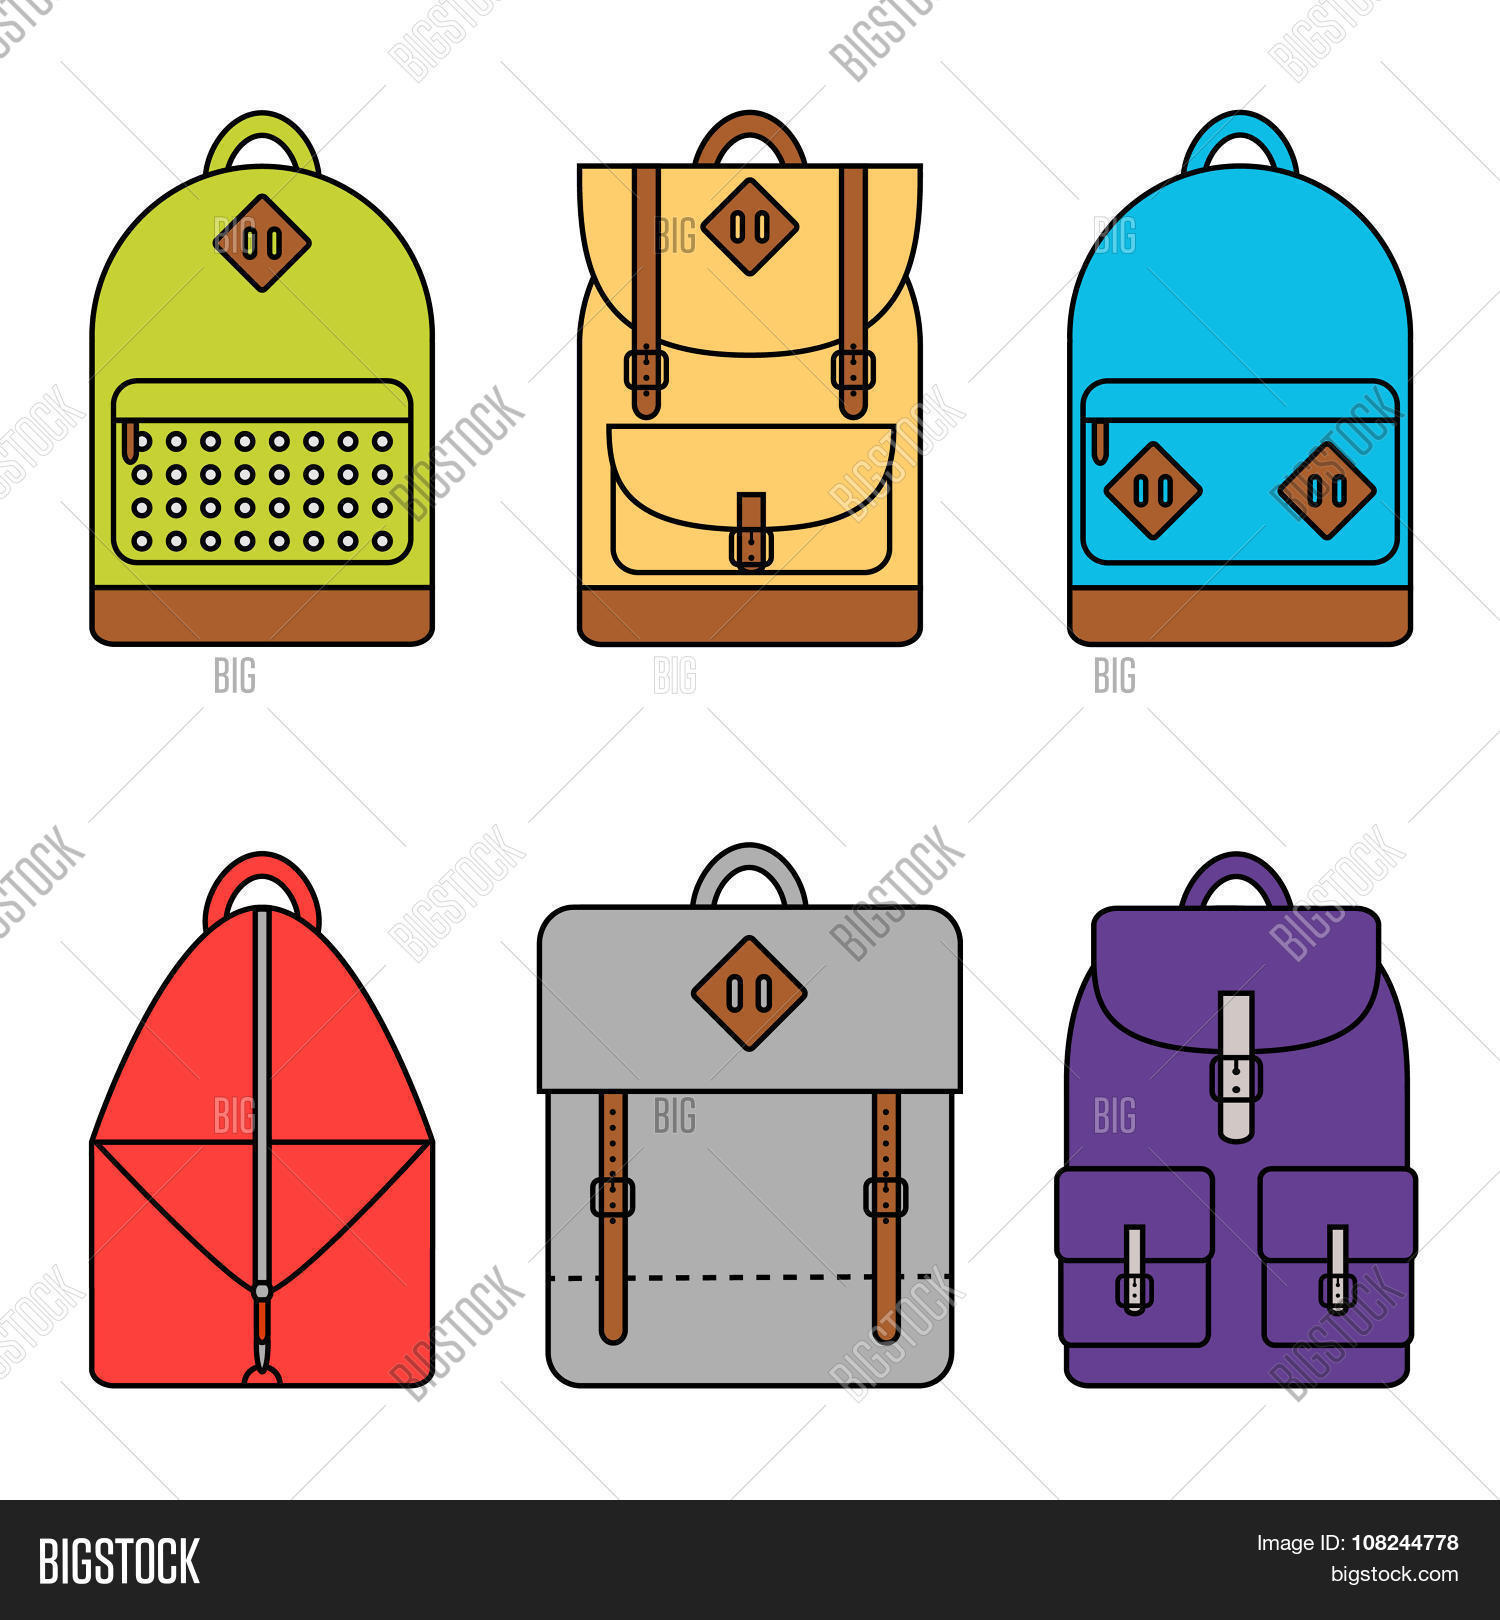 3324c9de802d Isolated backpack icons set on background. Collection of six different  backpacks. School backpack. Sport backpack. Travel backpack. Flat line  style vector ...